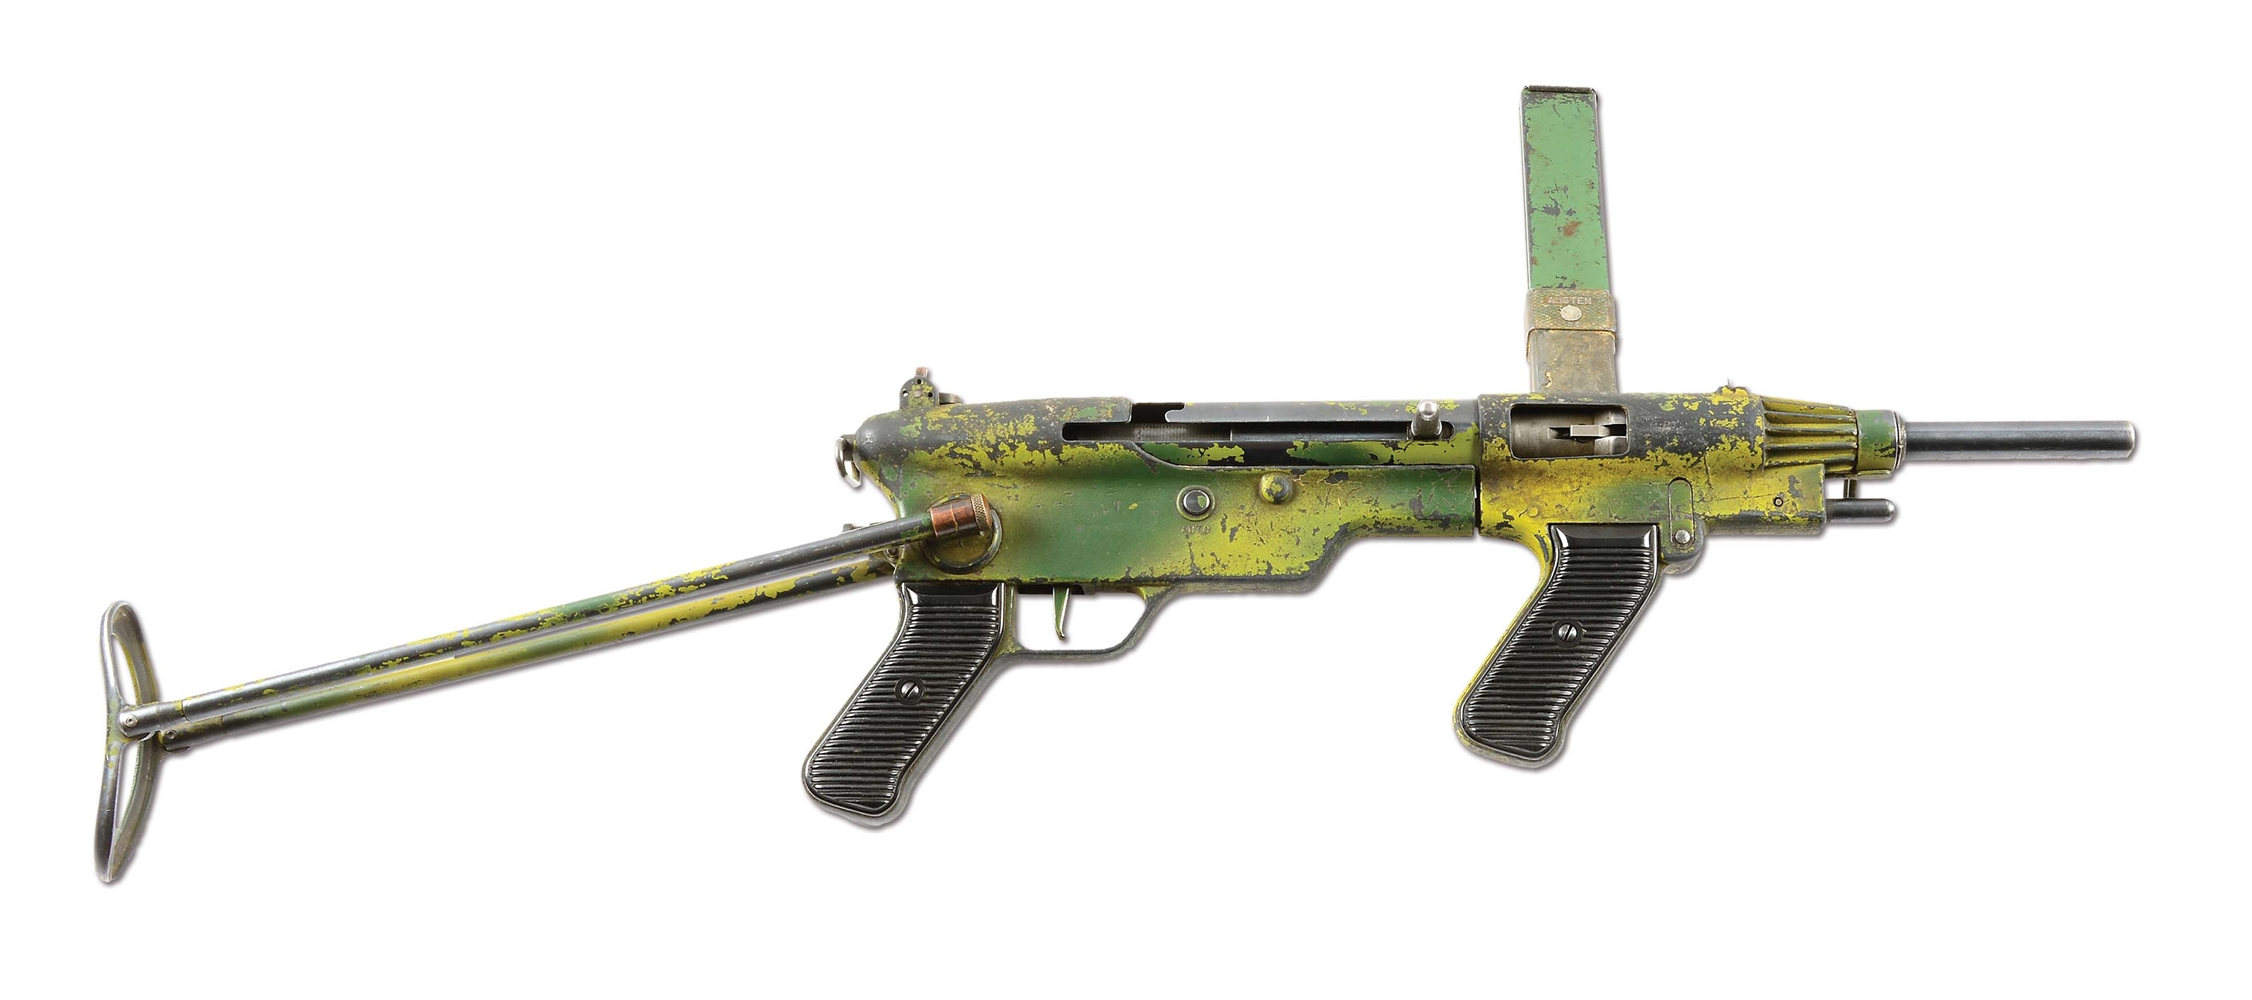 (N) EXTREMELY RARE ORIGINAL FULLY TRANSFERABLE AUSTEN MK II XP MACHINE GUN (CURIO AND RELIC).